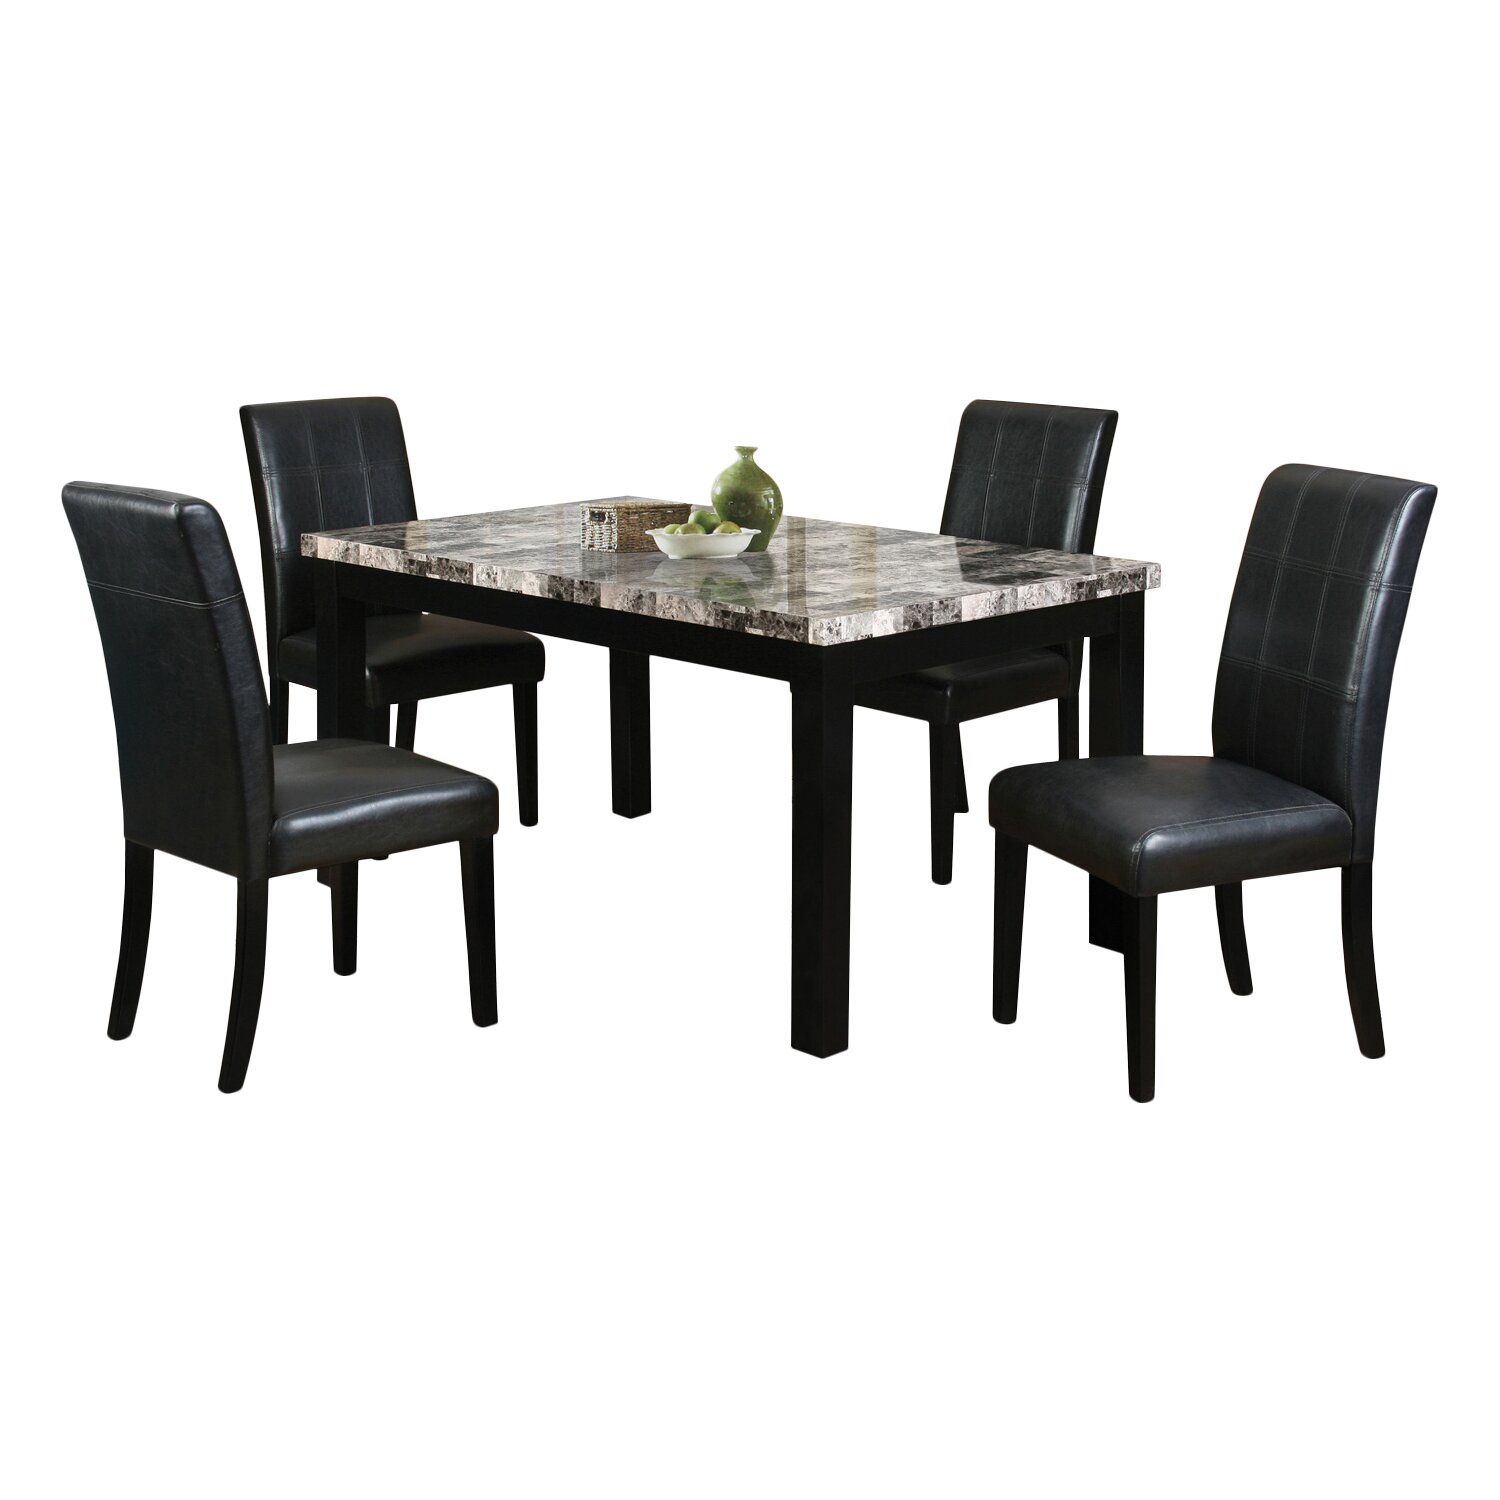 Ultimate Accents Urban 7 Piece Dining Set Reviews: Latitude Run Cahill 5 Piece Dining Set & Reviews